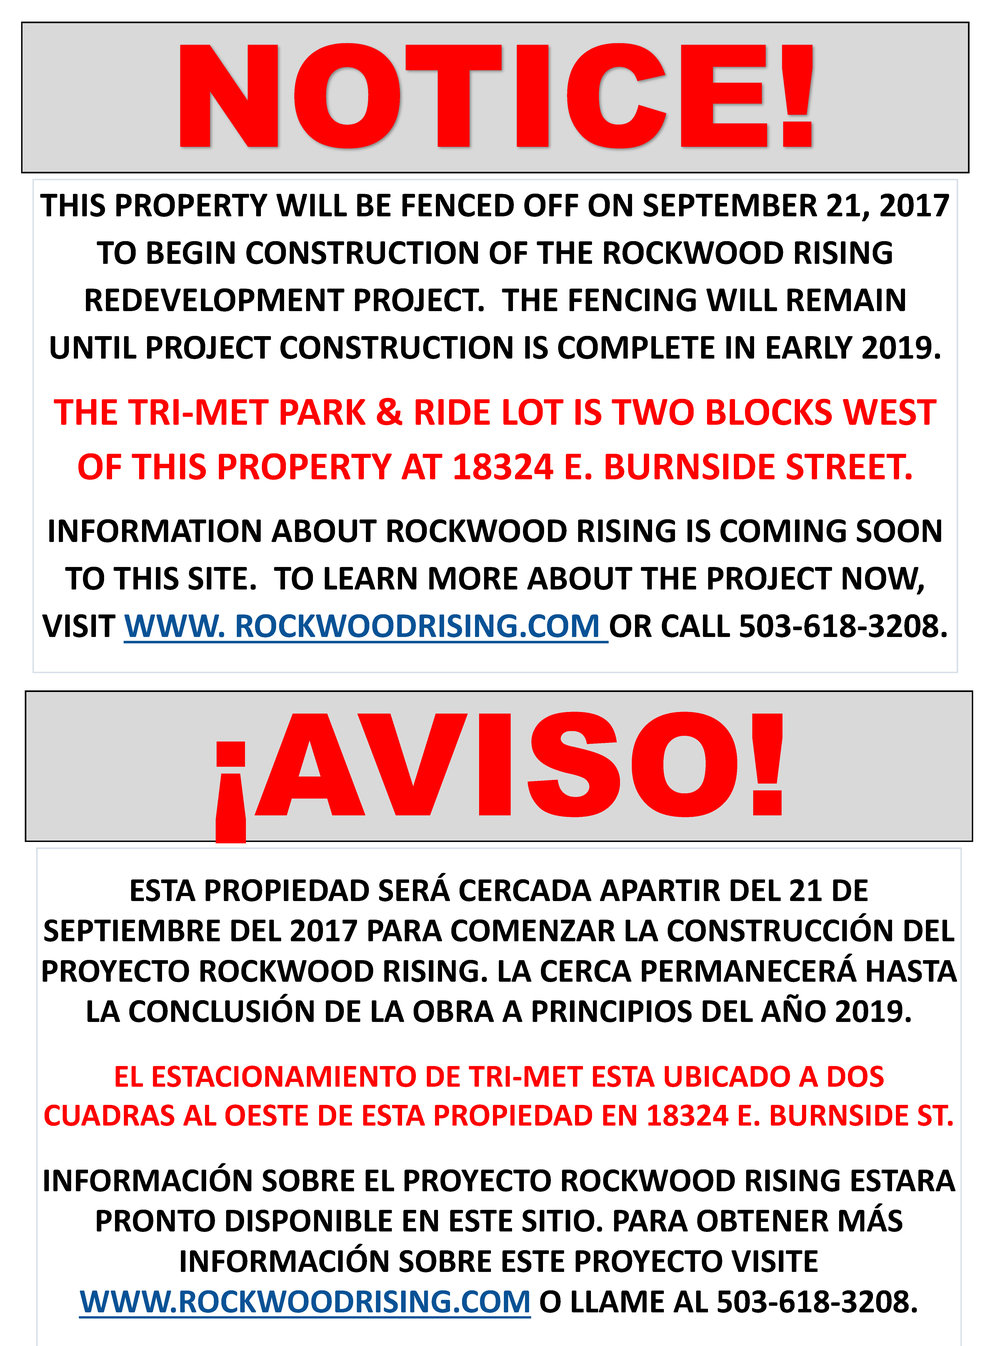 Pre-Fencing-Off-Site Notice - SPANISH CORRECTED CROPPED.jpg